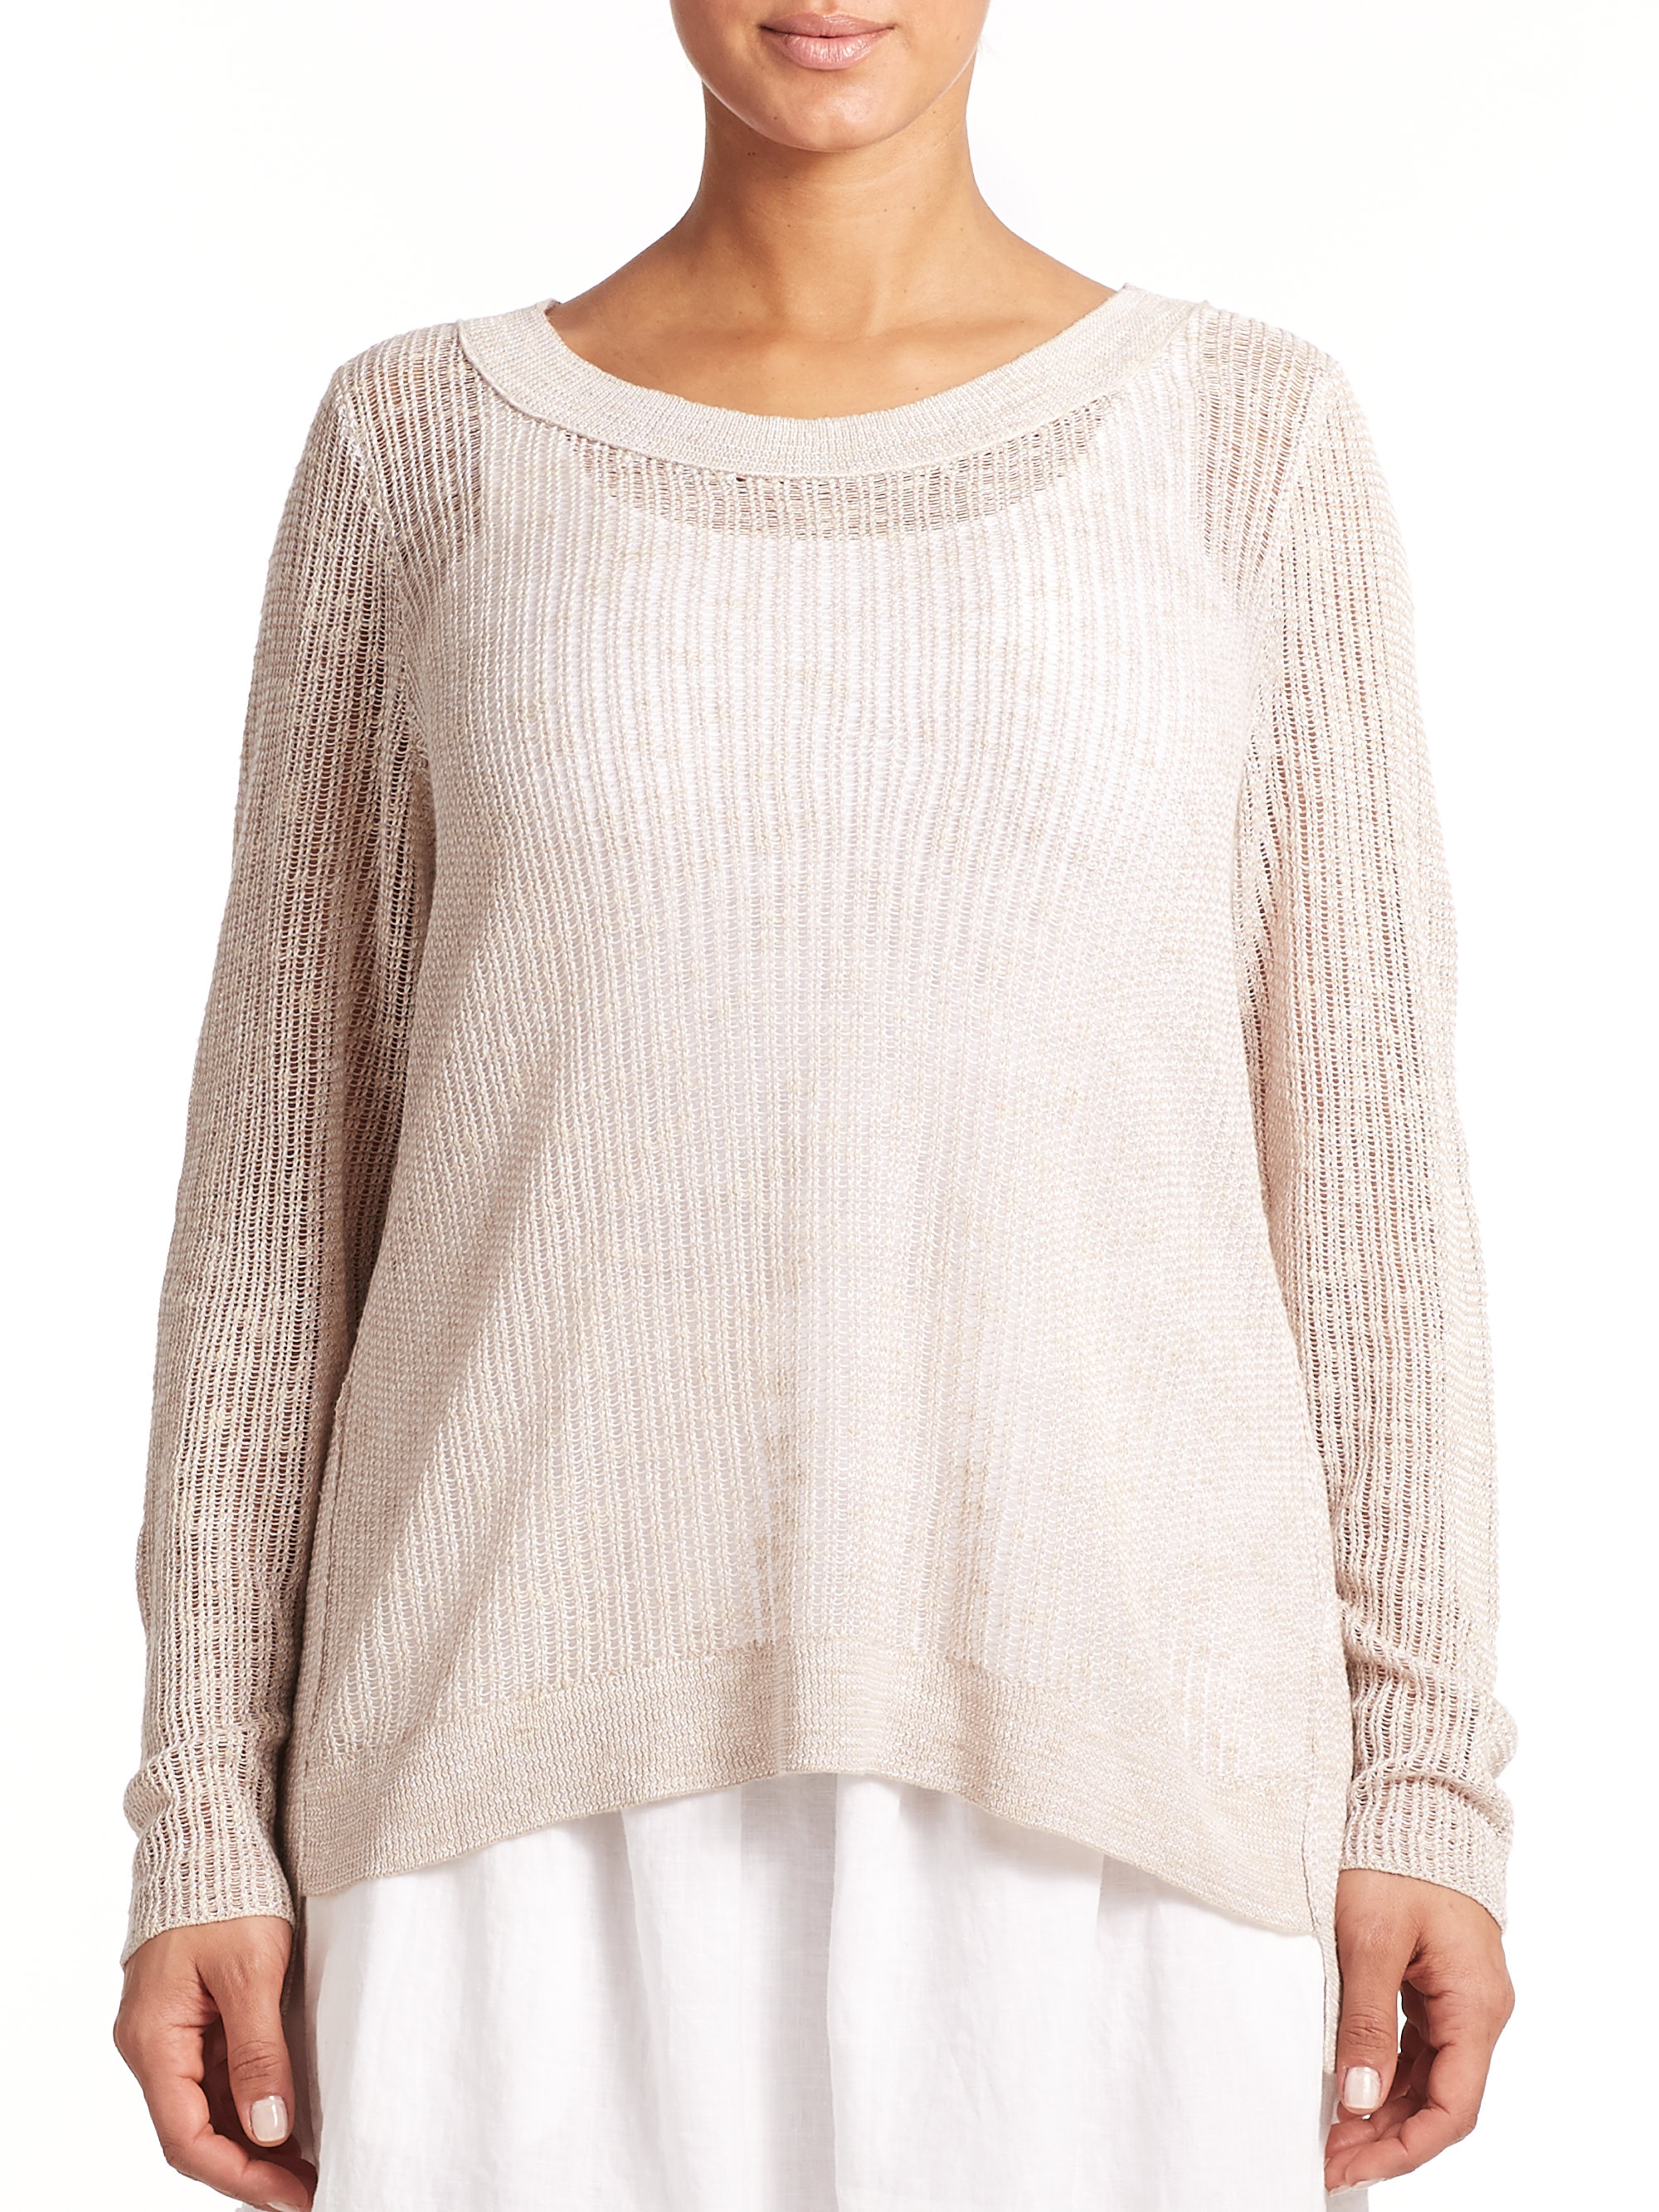 Eileen Fisher Linen Amp Cotton Open Knit Top In Natural Lyst